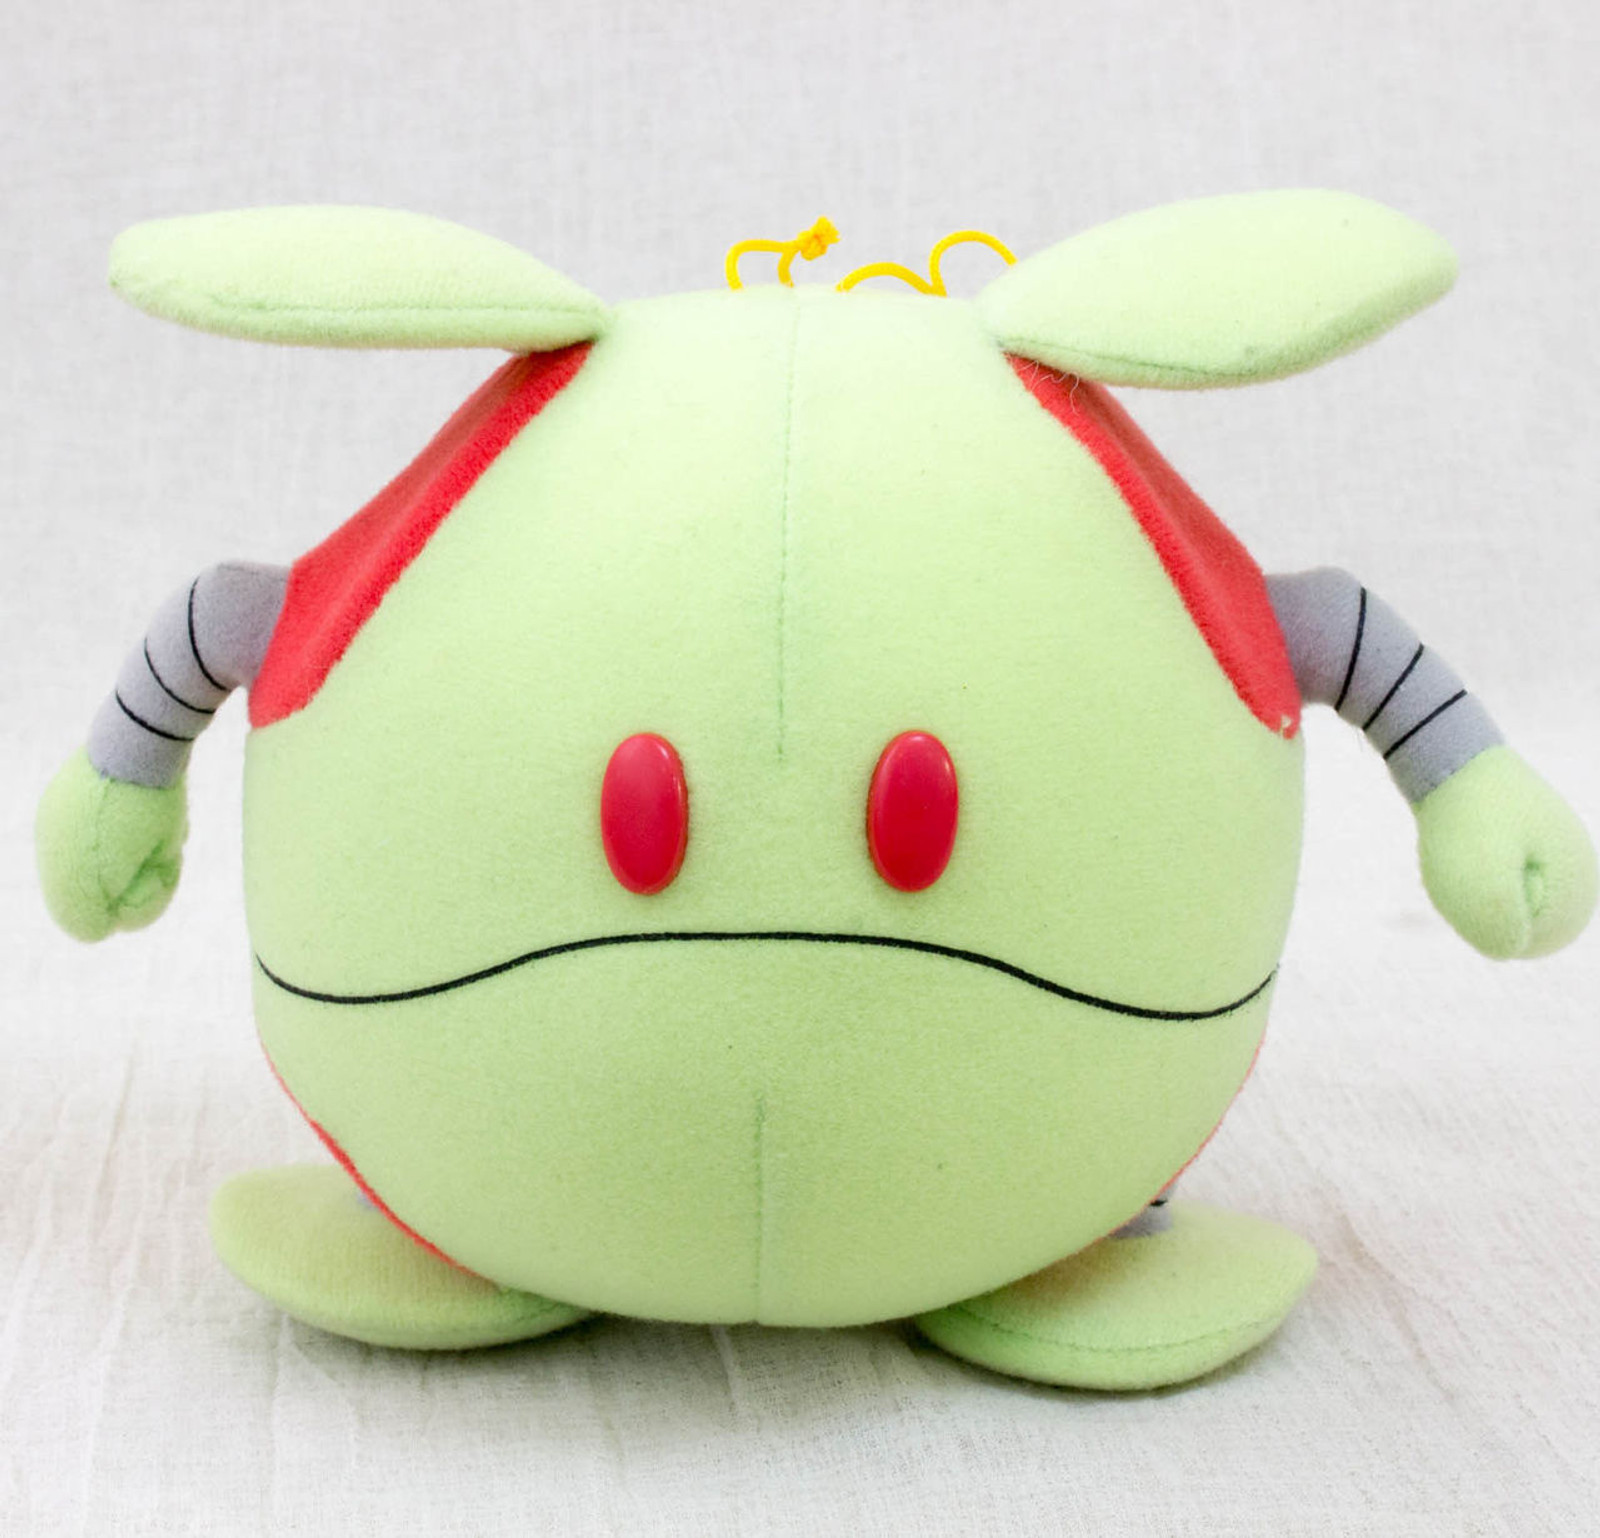 "Gundam Mascot Robot Haro Plush Stuffed Doll 5"" JAPAN ANIME MANGA"